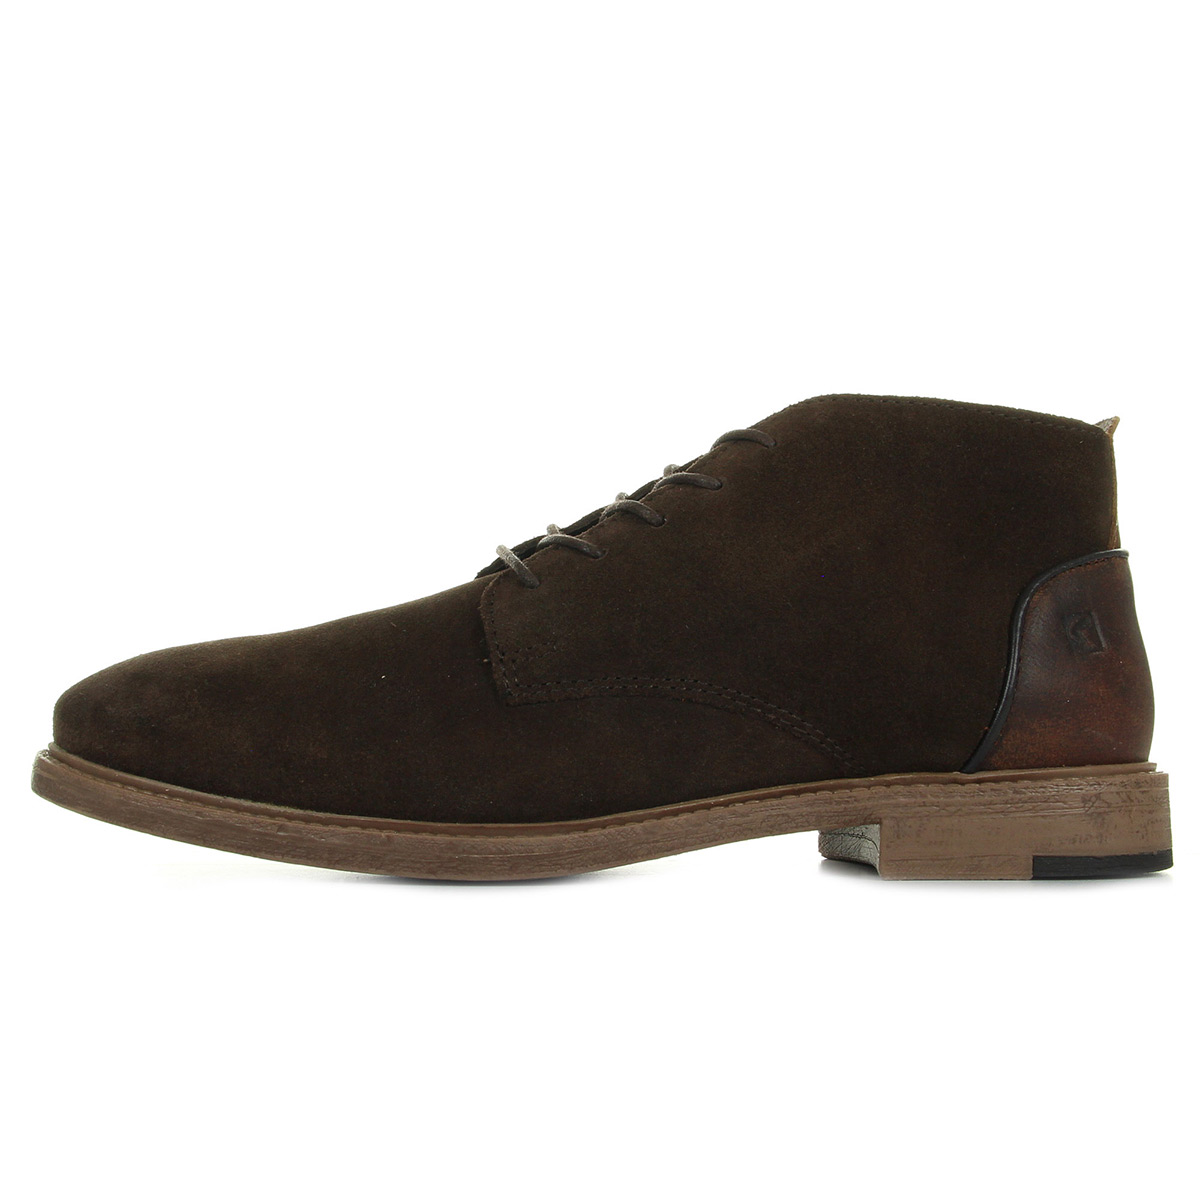 Redskins Vinati Marron IK32107250, Bottines homme